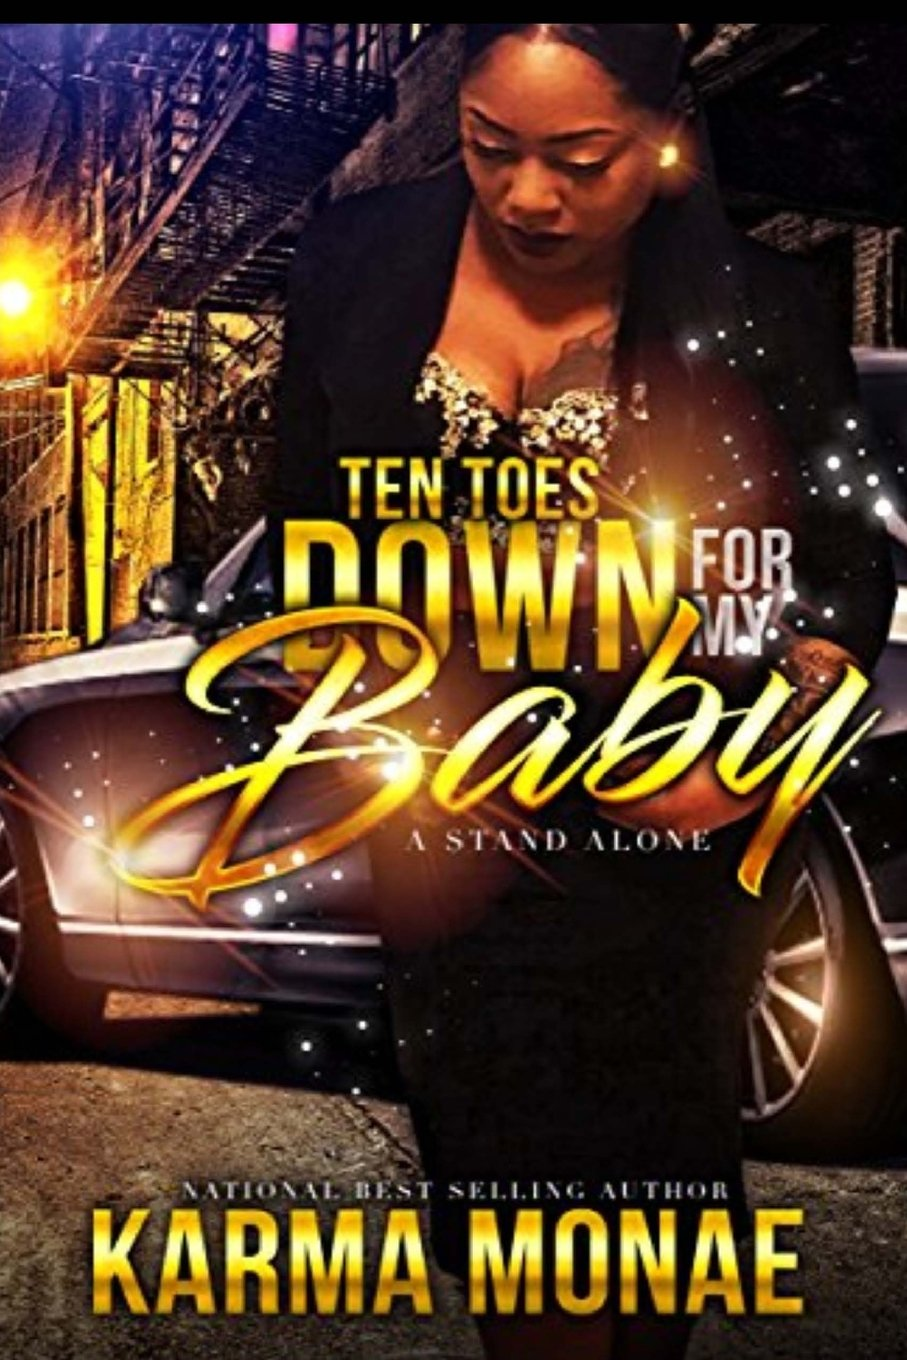 Read Online Ten Toes Down For My Baby (Volume 1) PDF